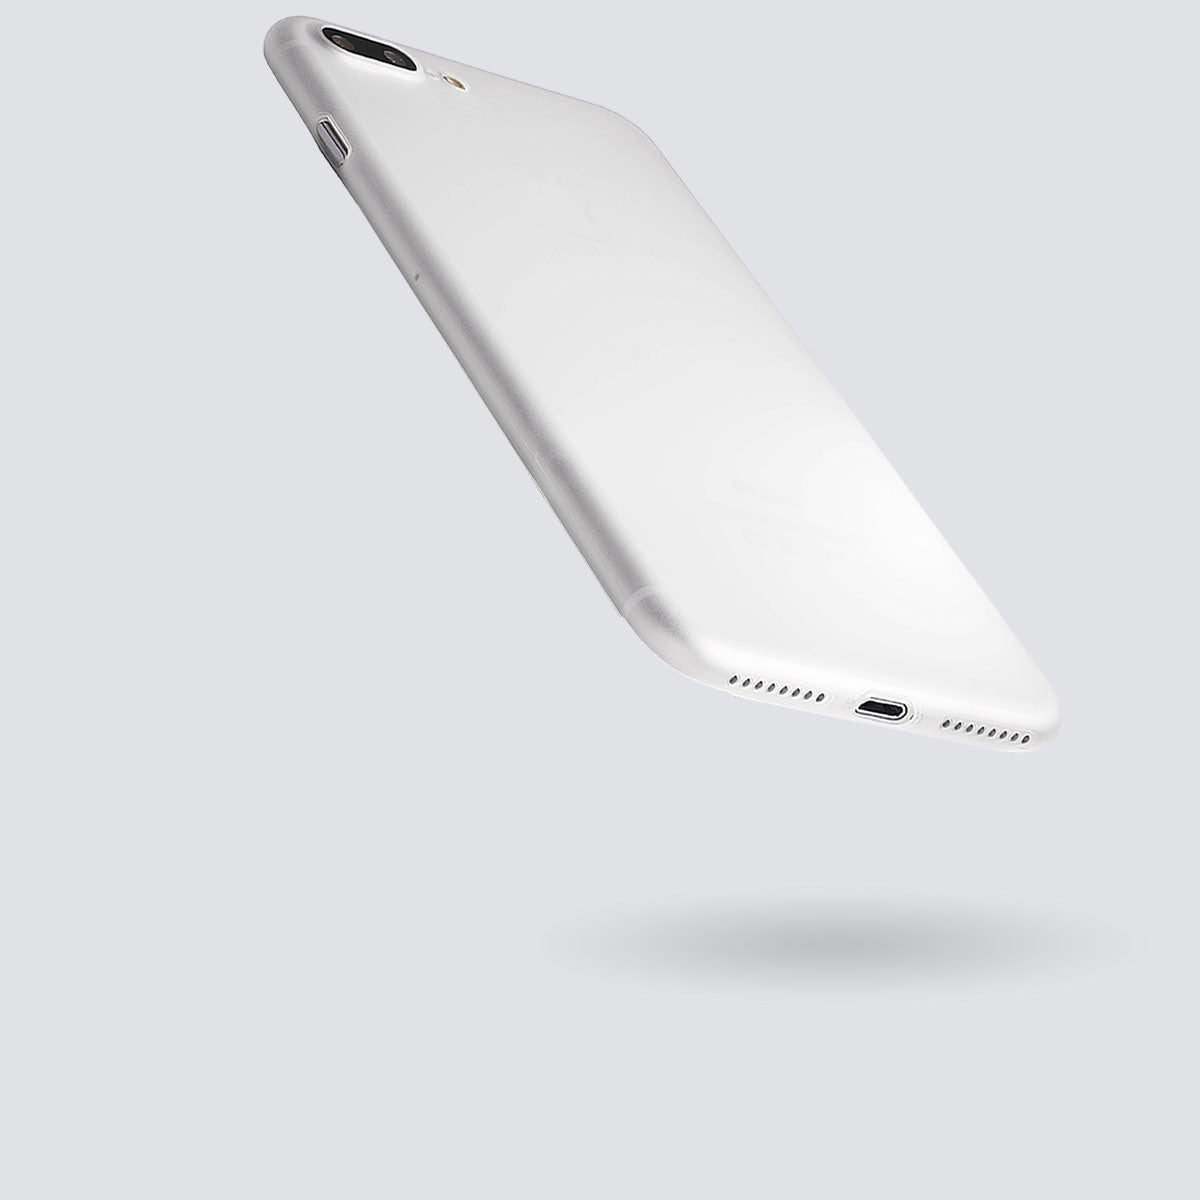 totallee's no bulk, ultra thin iphone case hovering in the air